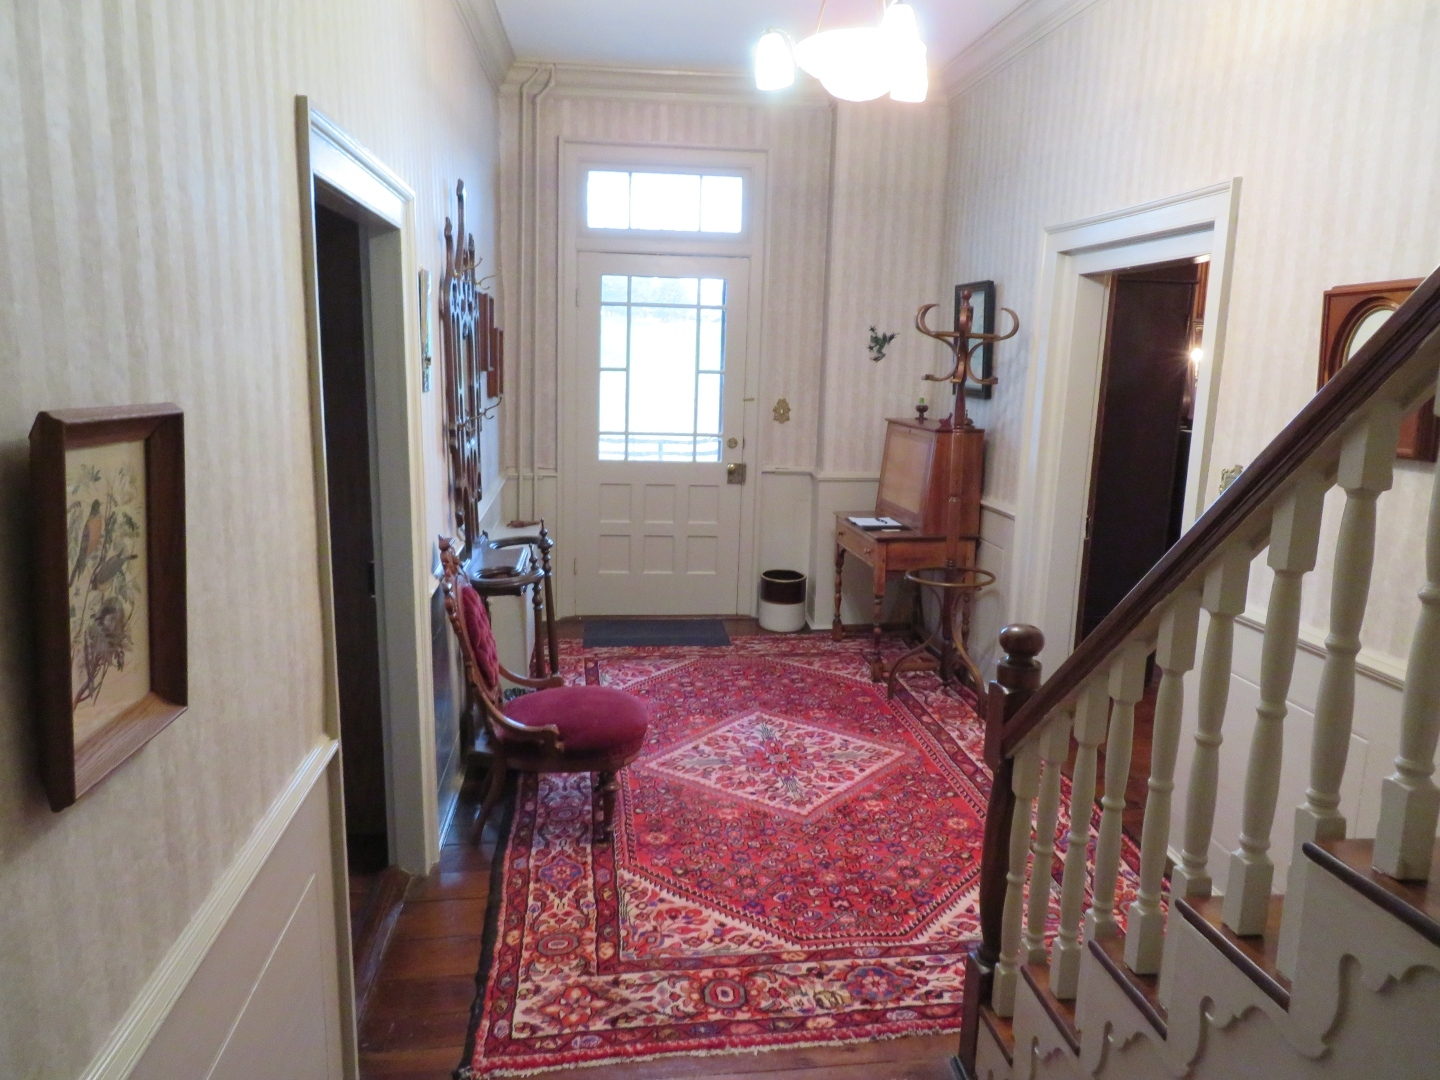 Waynesboro Bed and Breakfast